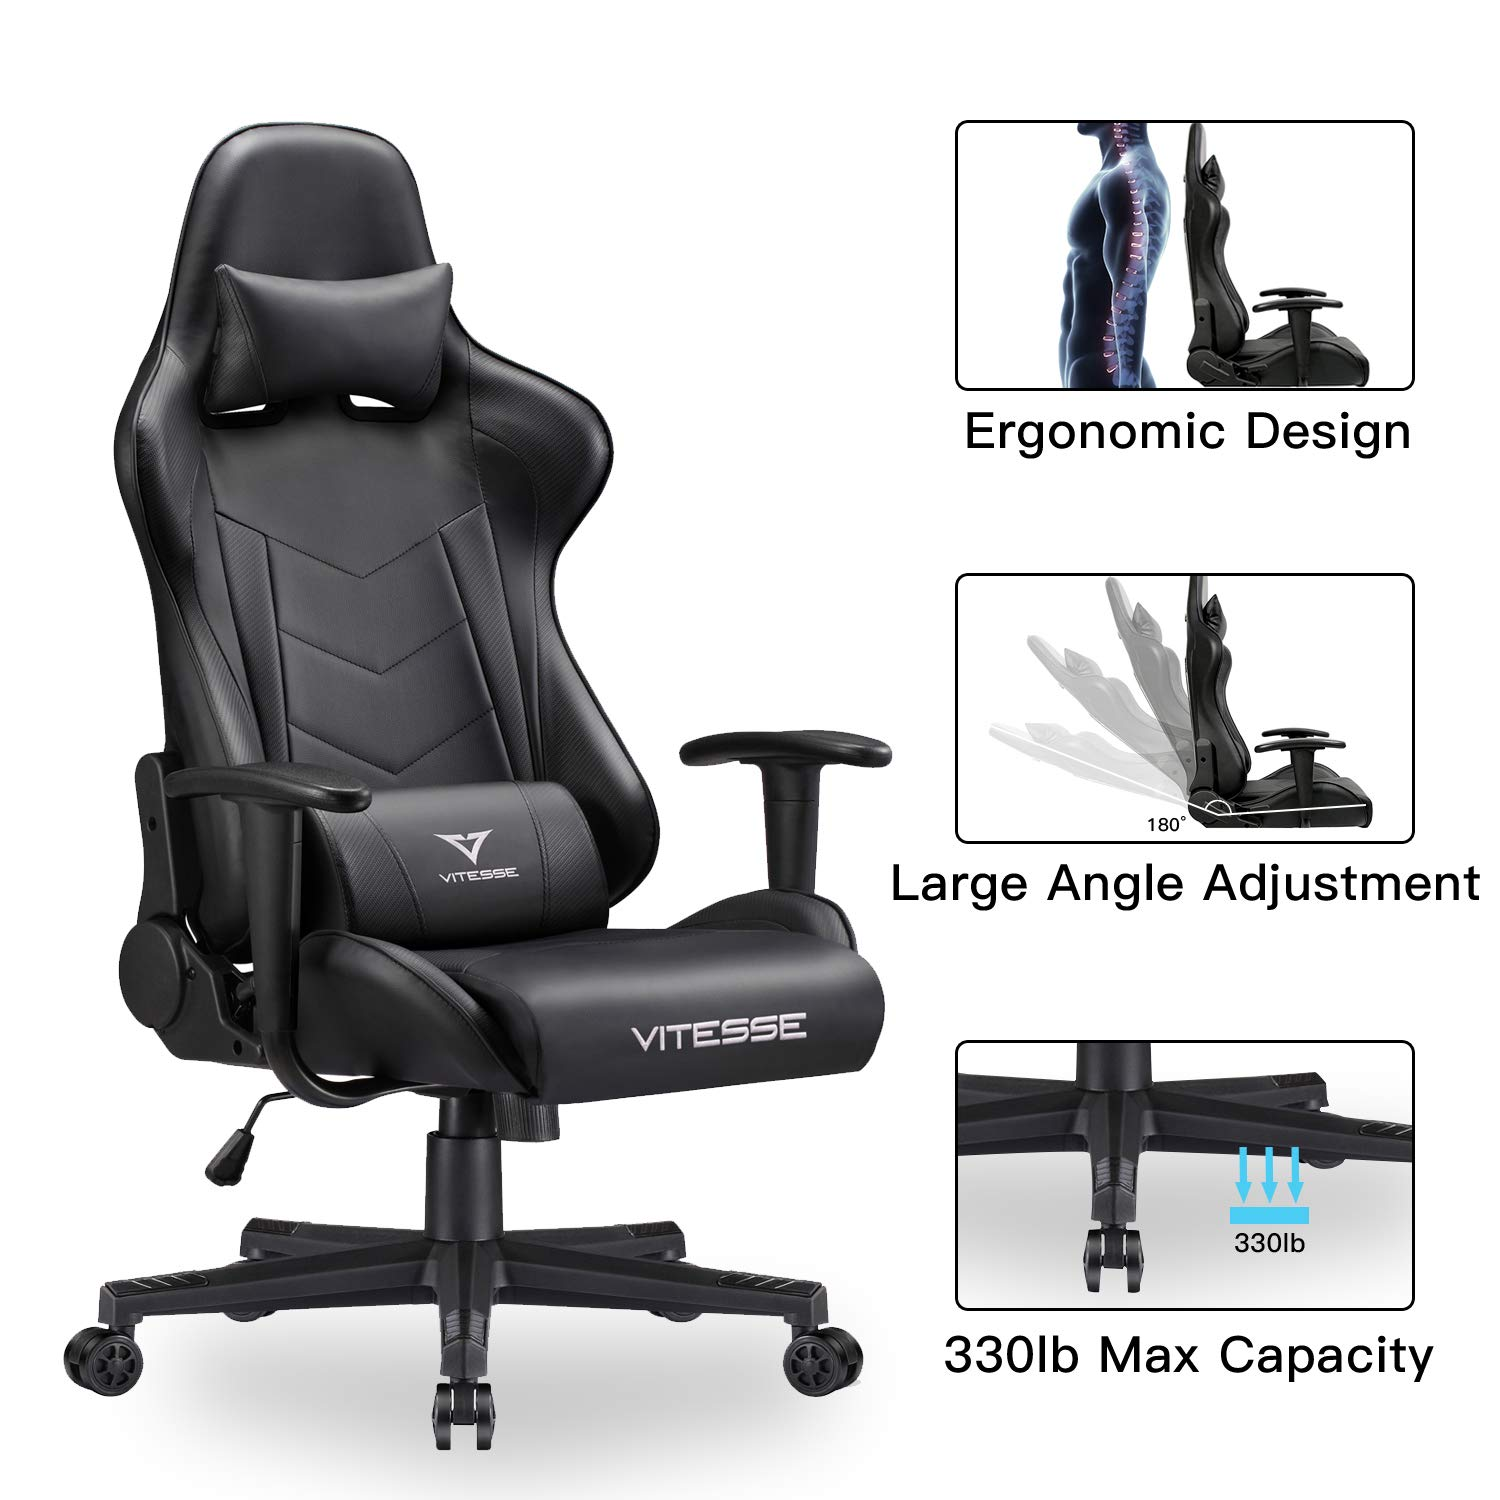 Stupendous Vit Computer Gaming Chair Racing Style High Back Pc Chair Ergonomic Office Desk Chair Swivel E Sports Leather Chair With Lumbar Support And Headrest Inzonedesignstudio Interior Chair Design Inzonedesignstudiocom